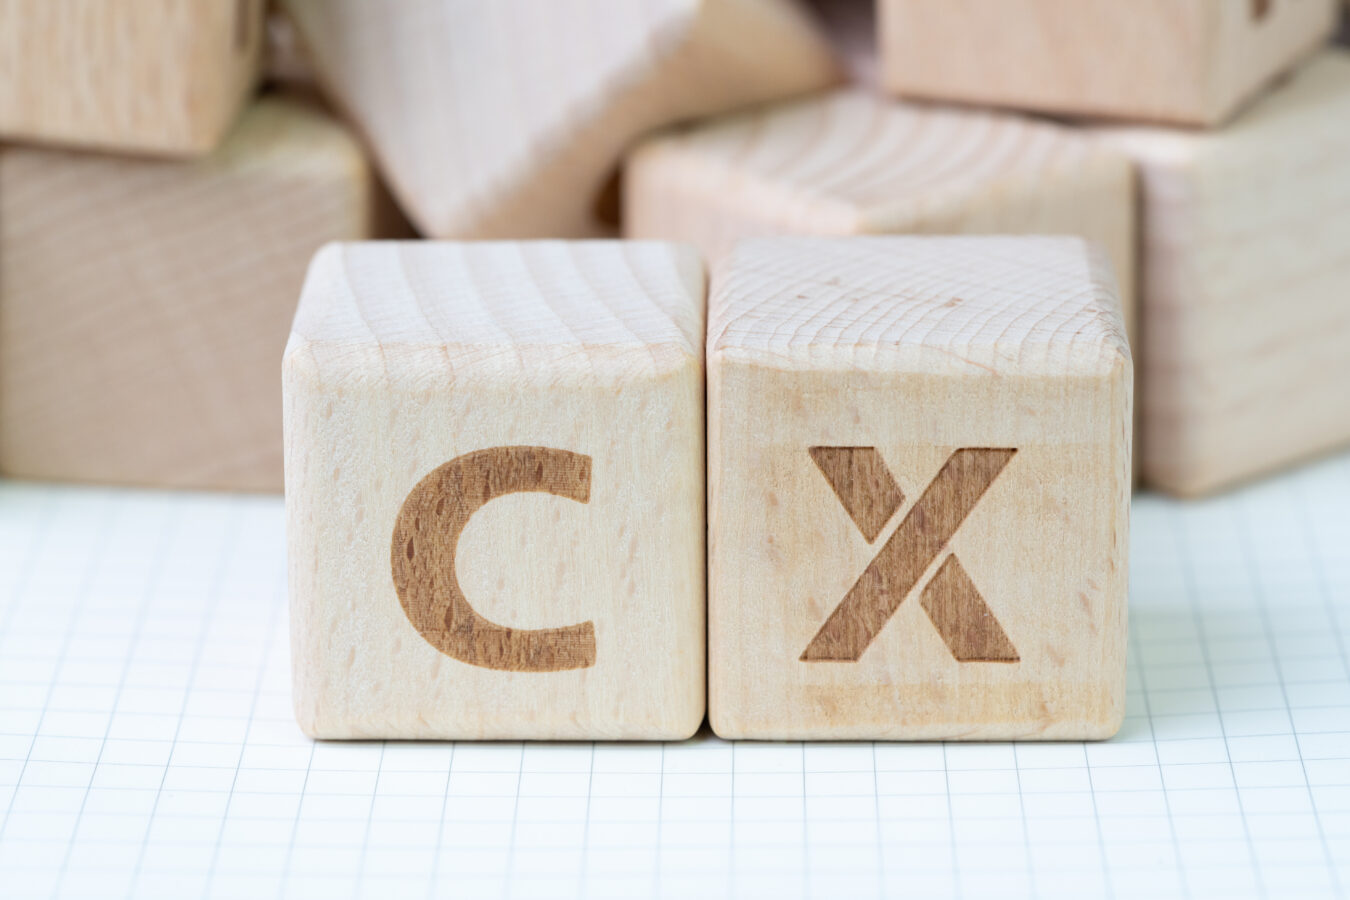 an image showing the letters of C and X indicating customer experience programme